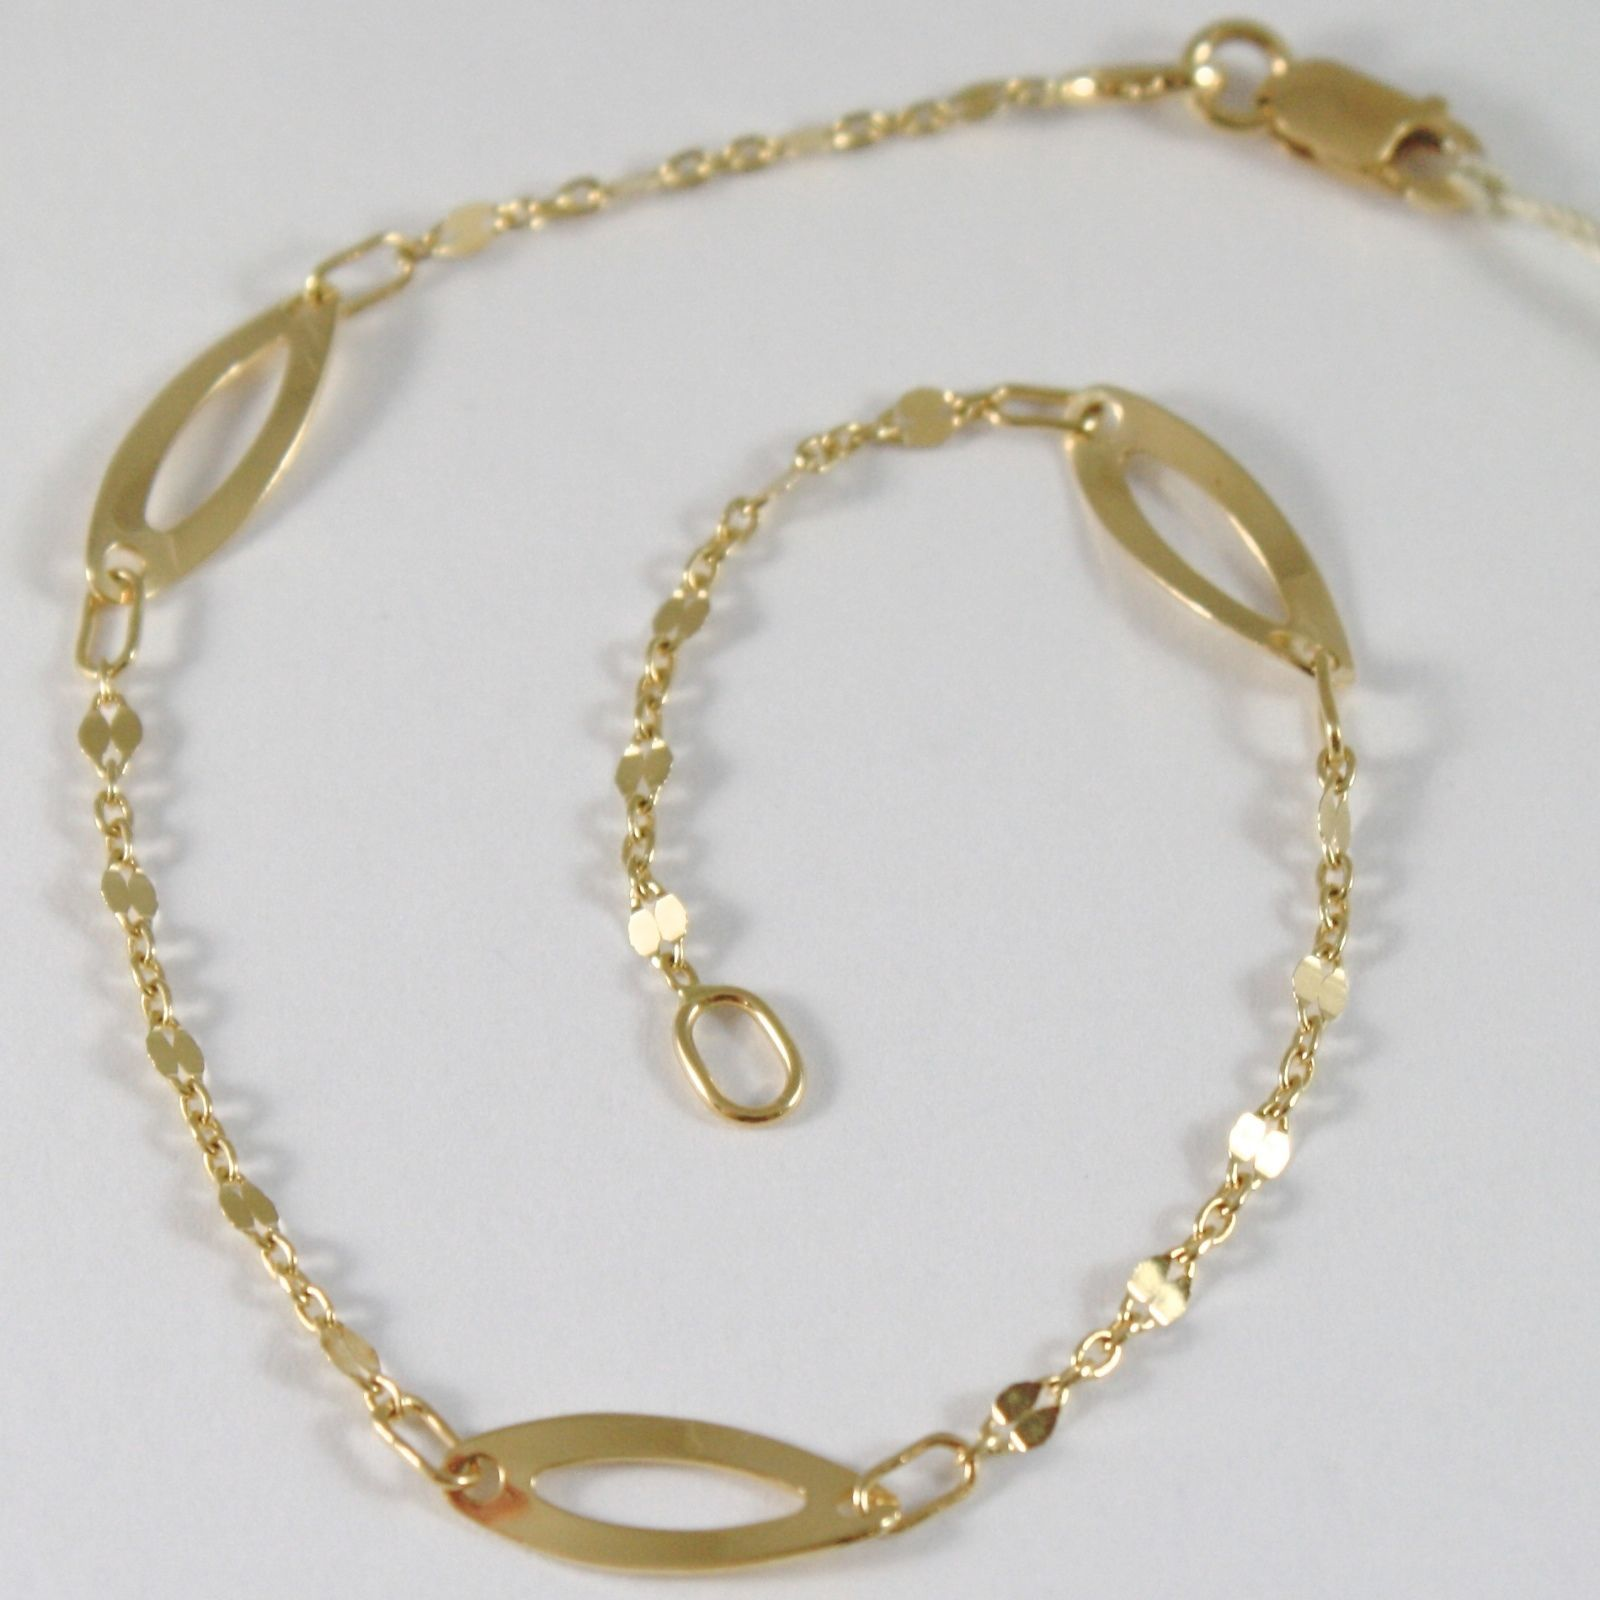 BRACELET YELLOW GOLD 750 18K WITH OVALS WAVY, 18.5 CM LENGTH